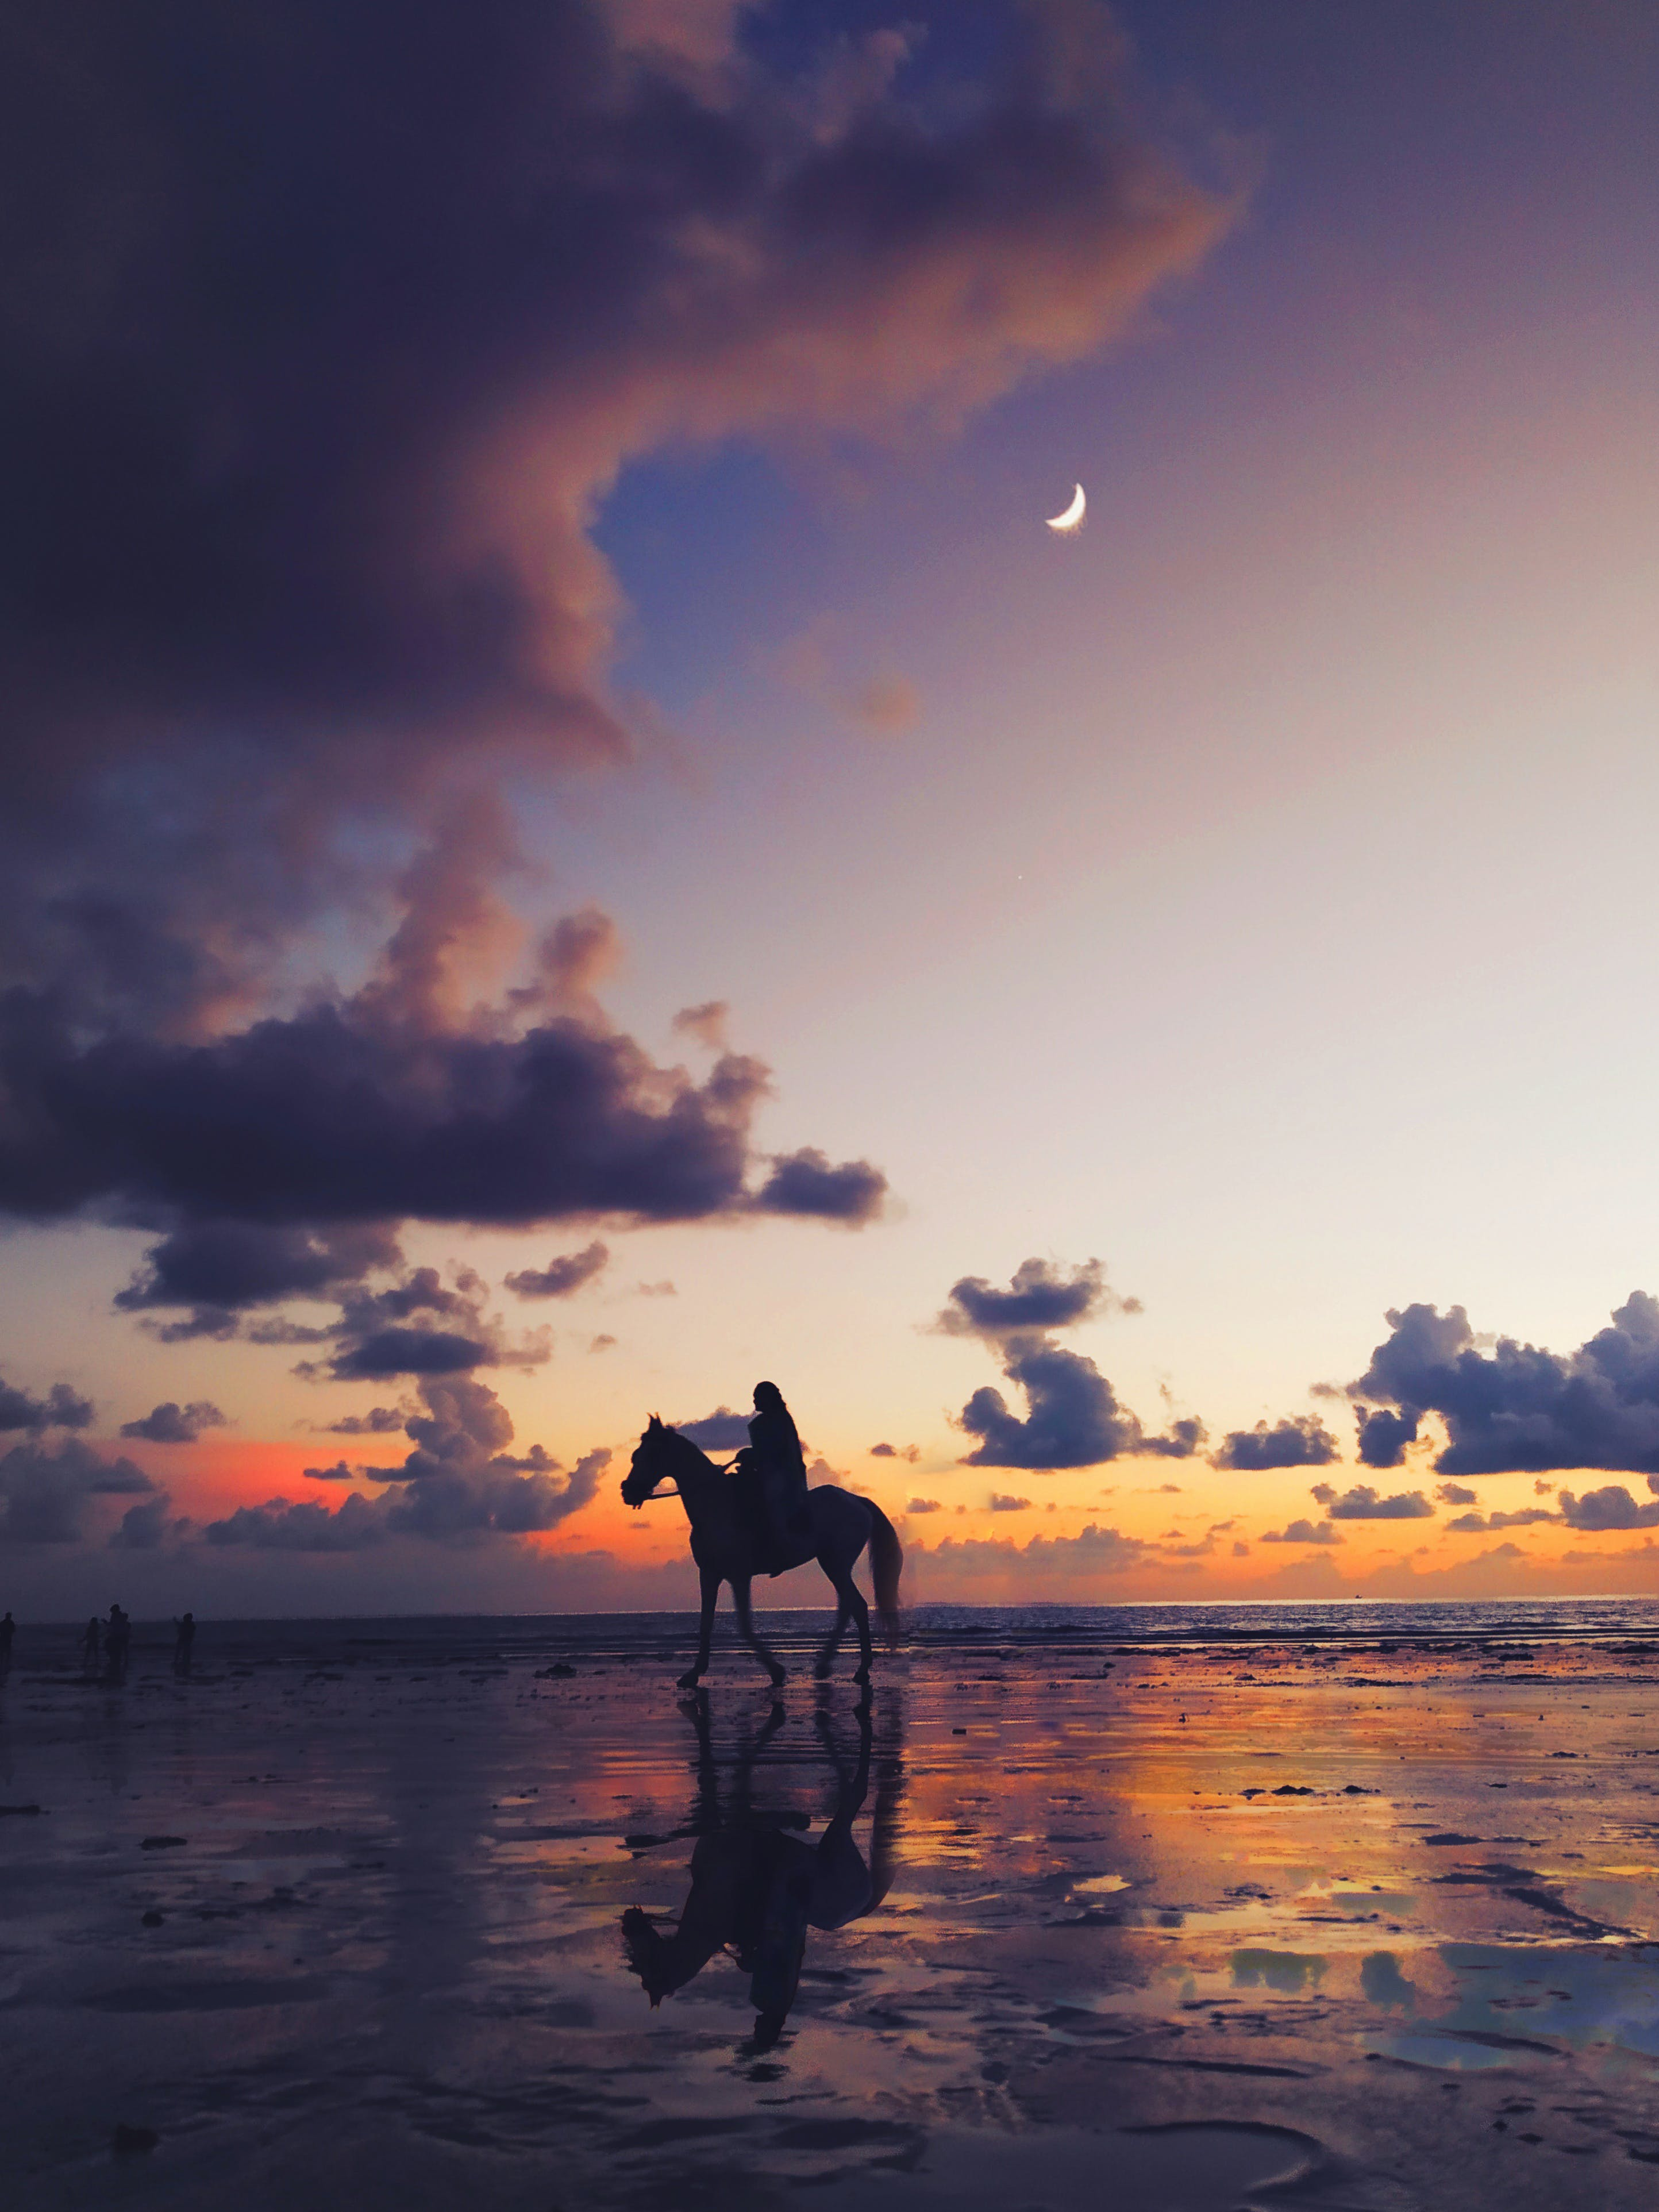 Silhouette Photo of Person Riding on Horse in Seashore